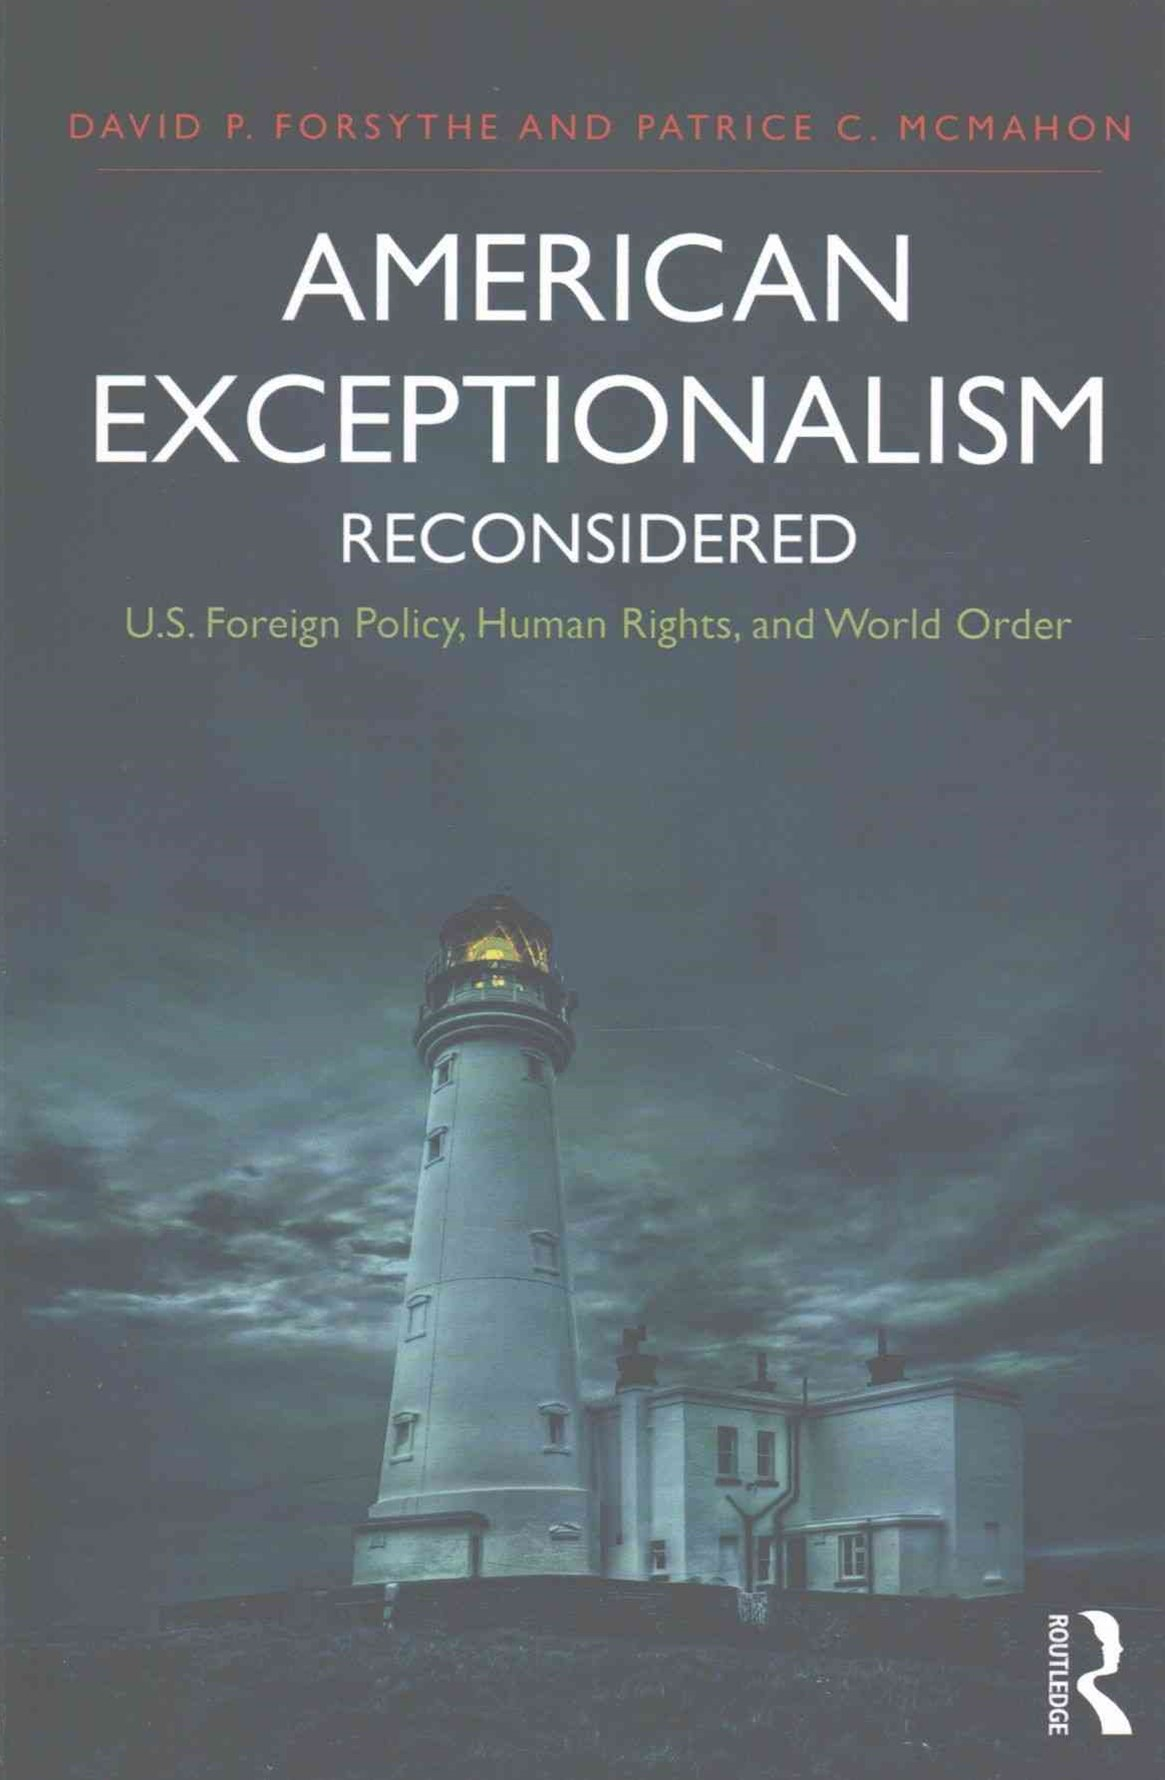 American Exceptionalism Reconsidered